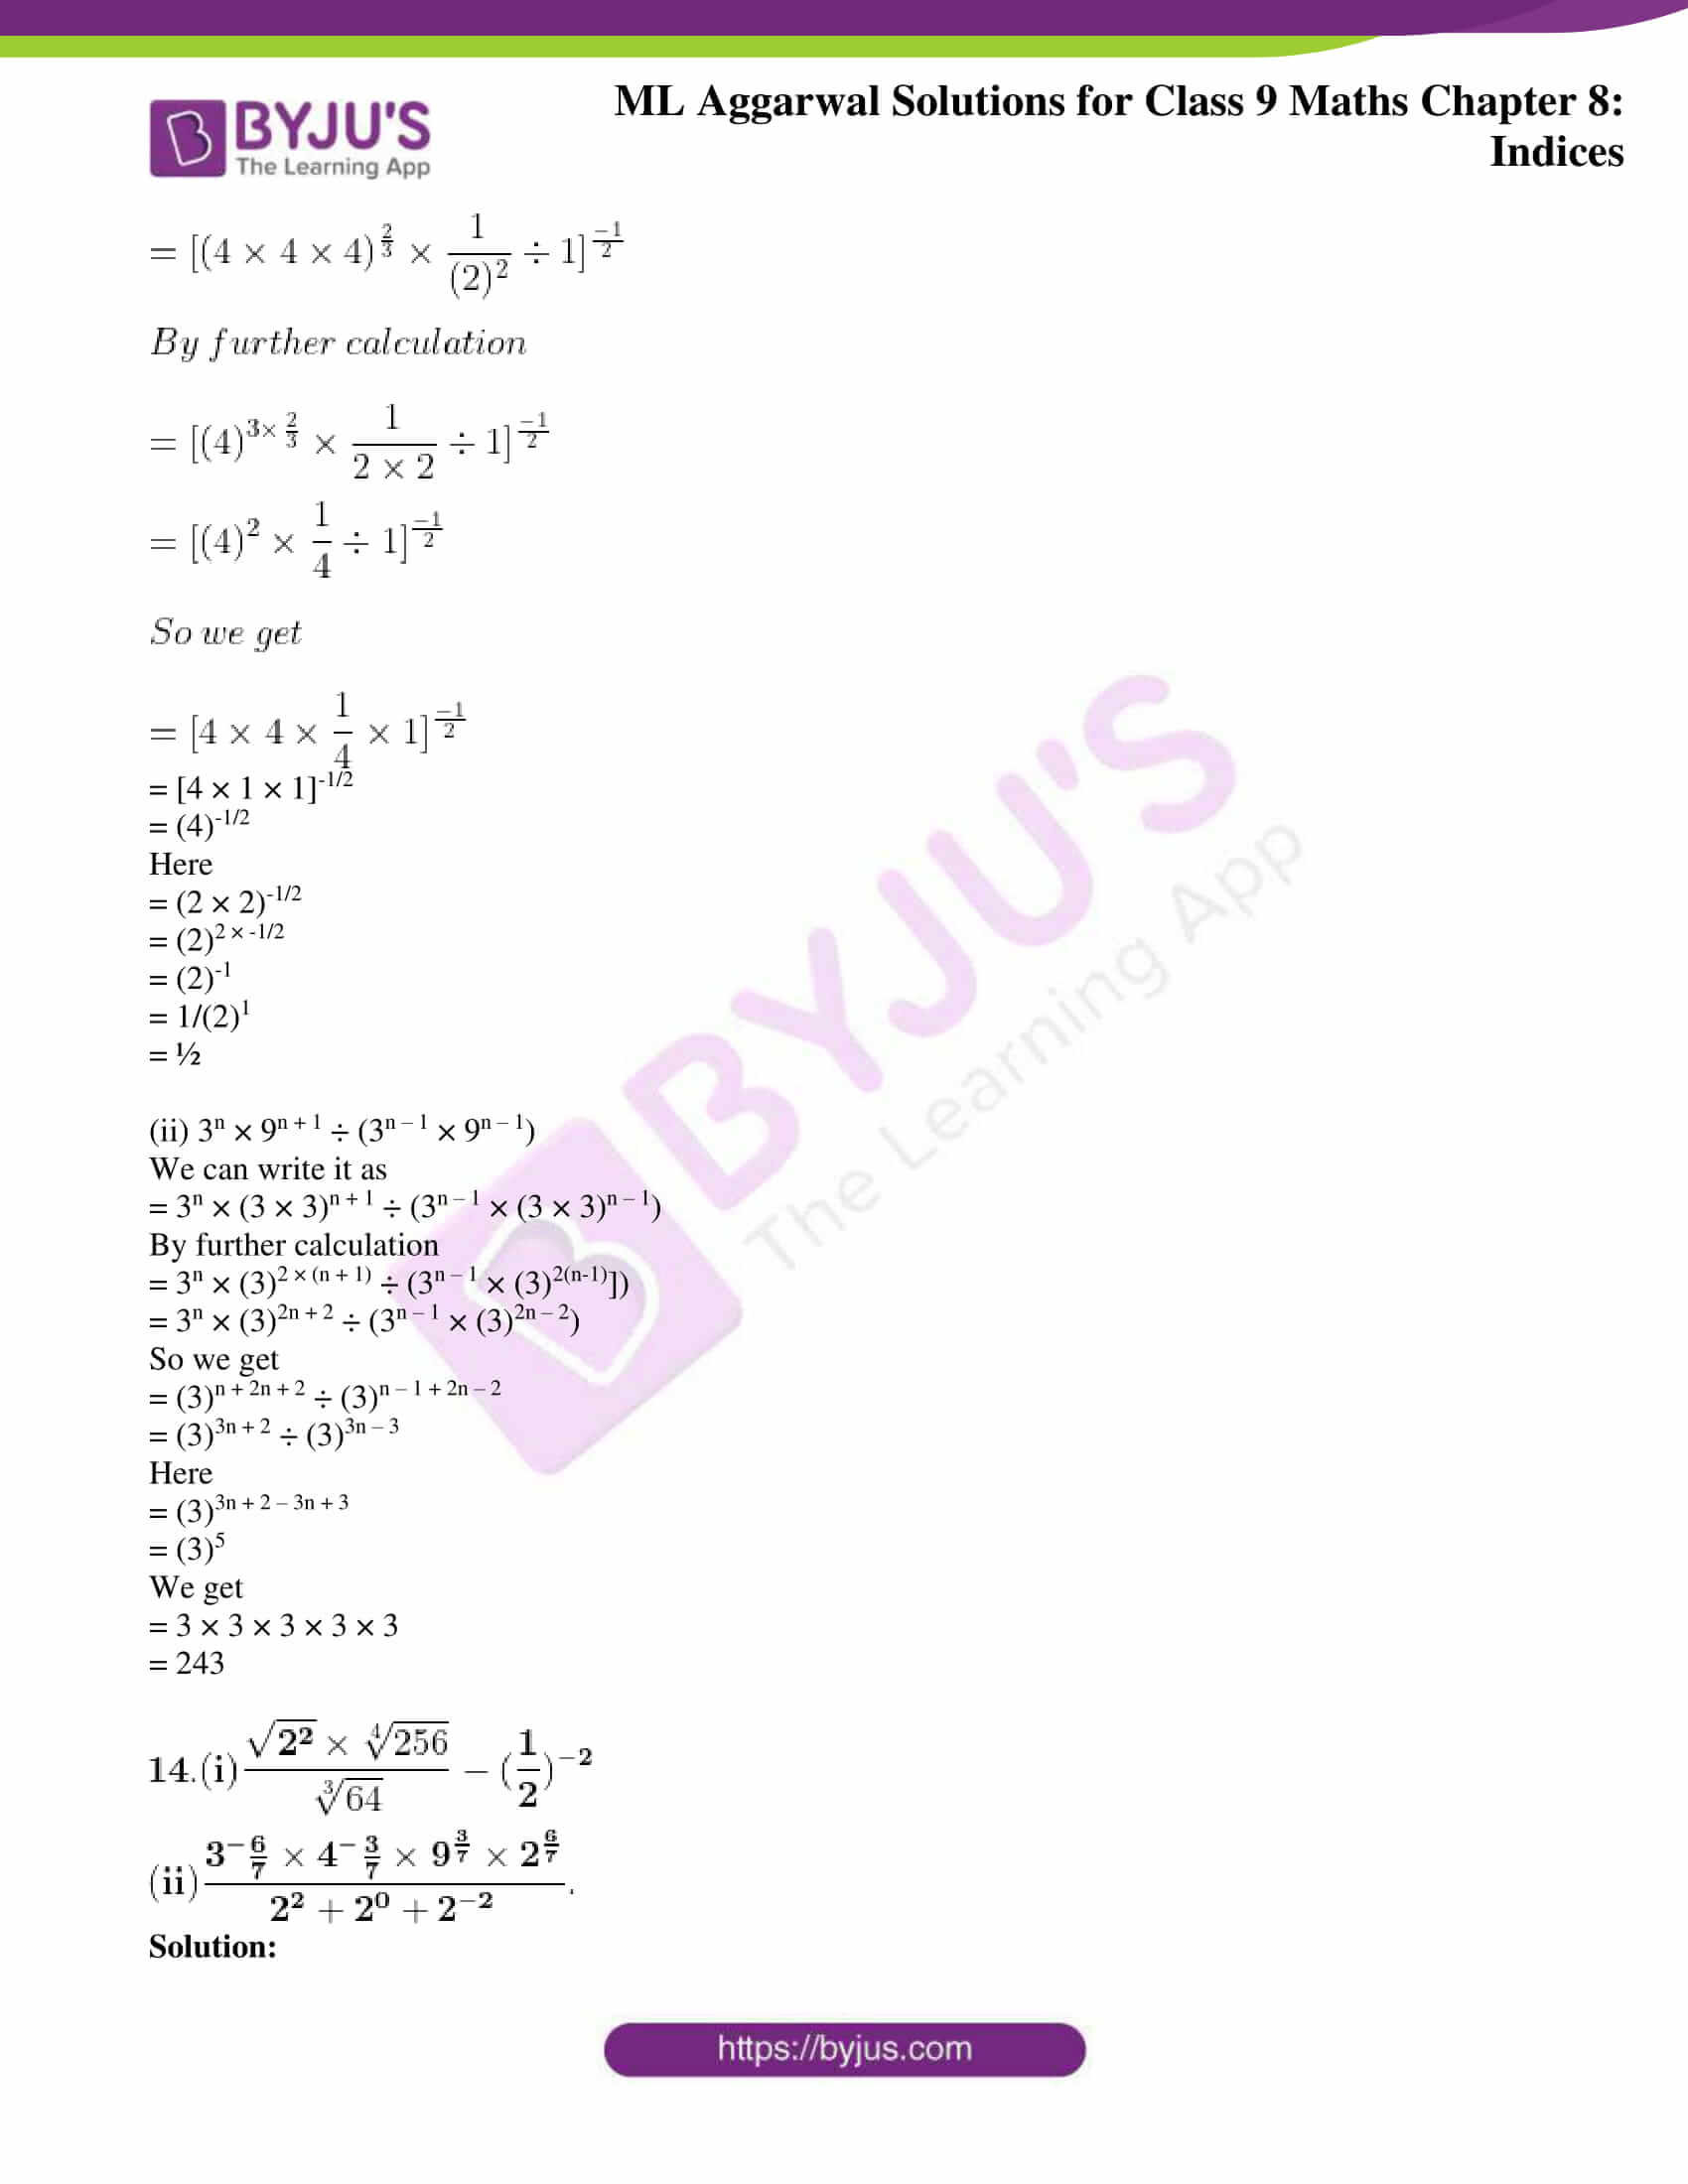 ml aggarwal solutions for class 9 maths chapter 8 13